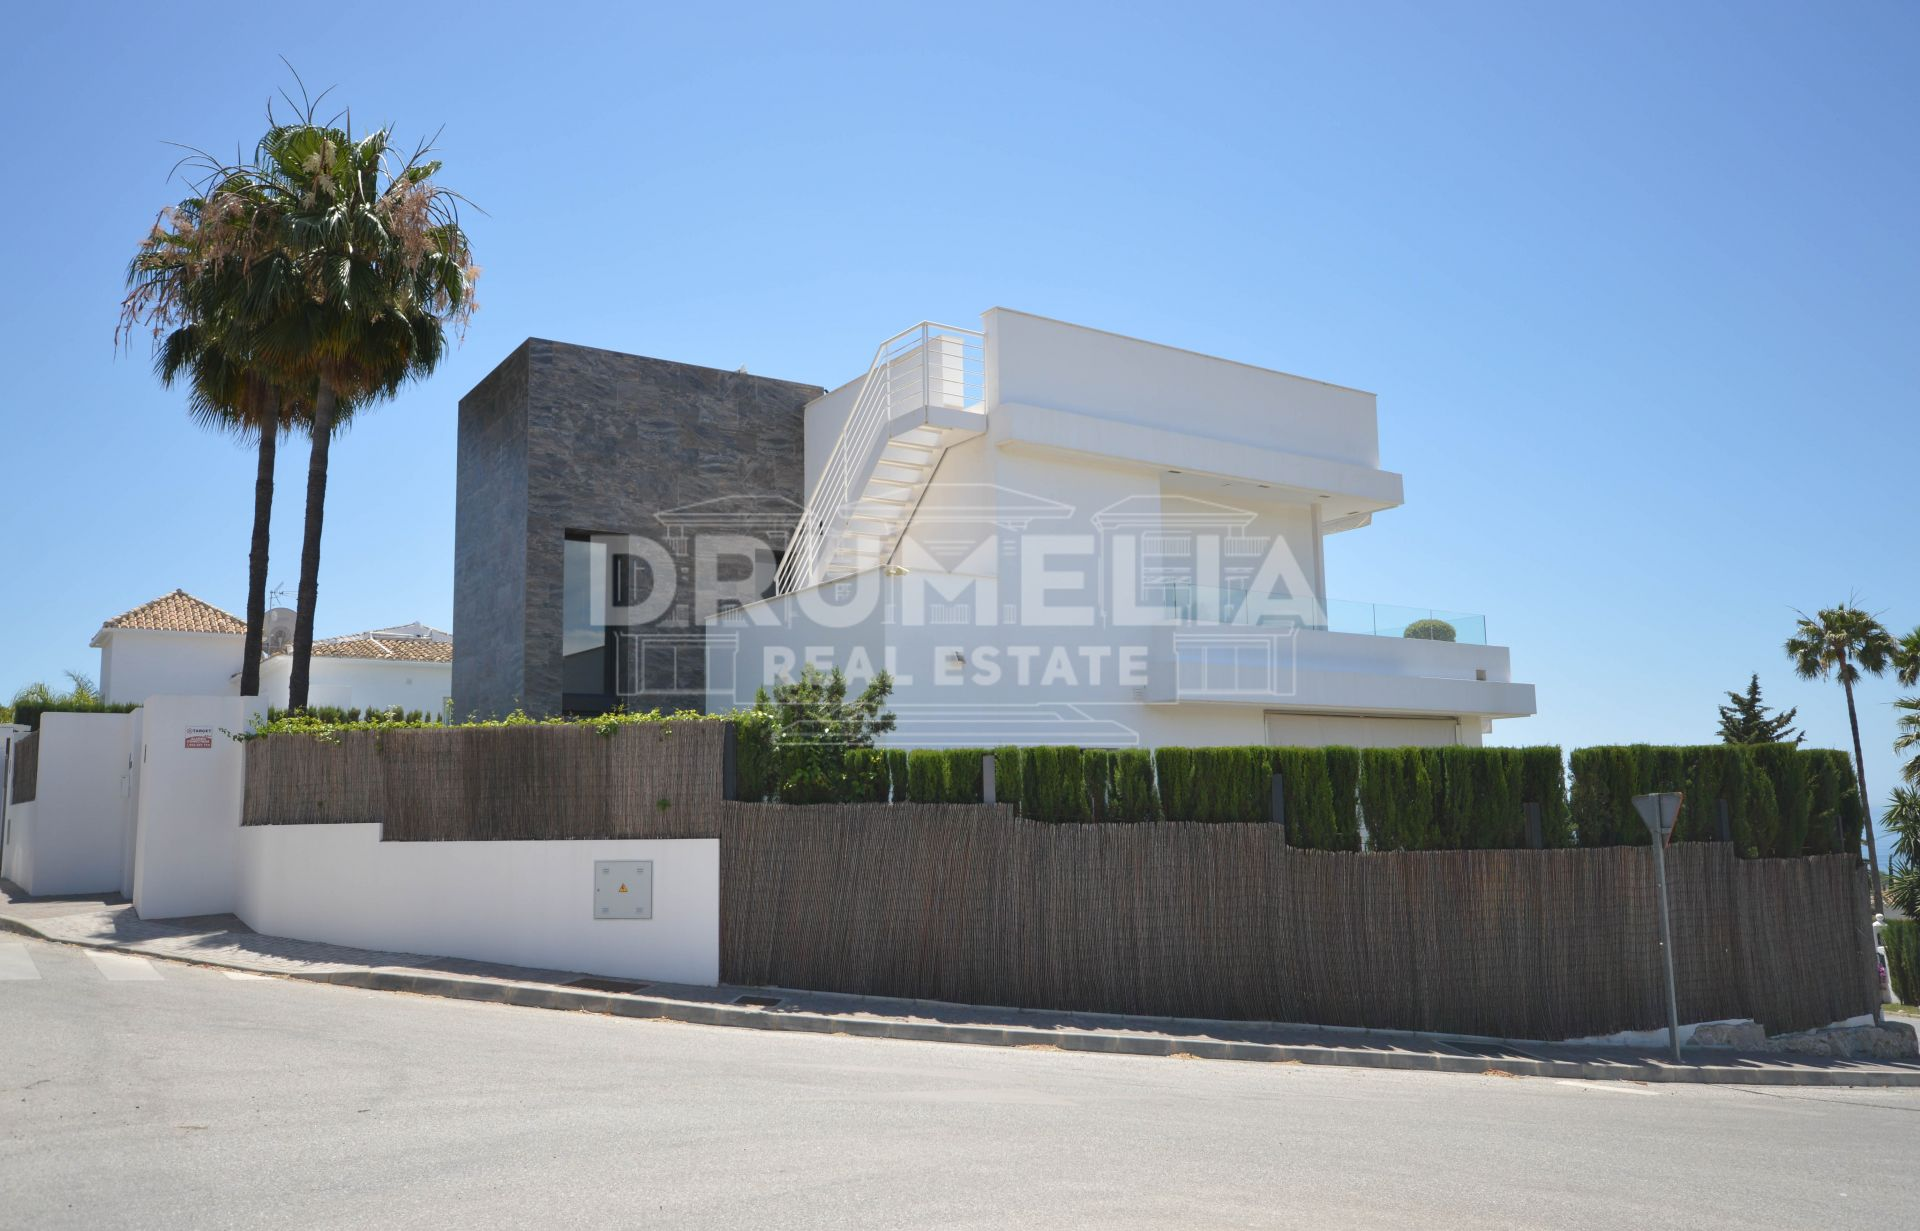 Marbella Golden Mile, Exceptional Modern Luxury Villa in Rocio de Nagüeles, Marbella Golden Mile (Marbella).